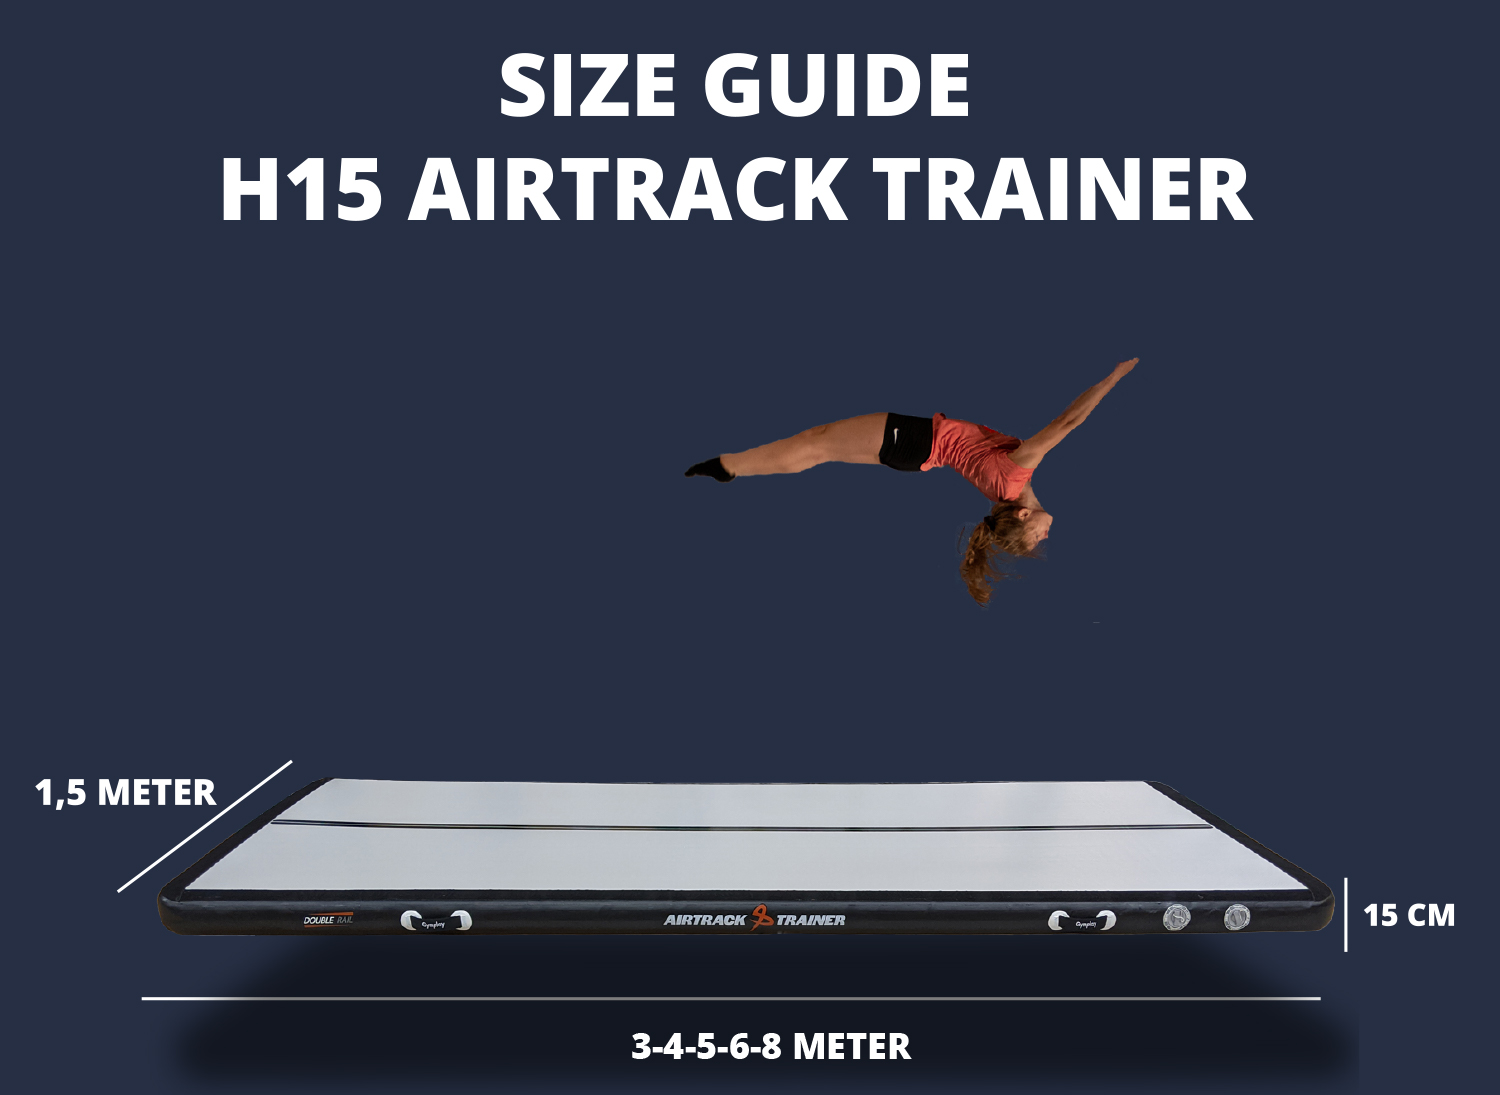 GymPlay airtrack size guide